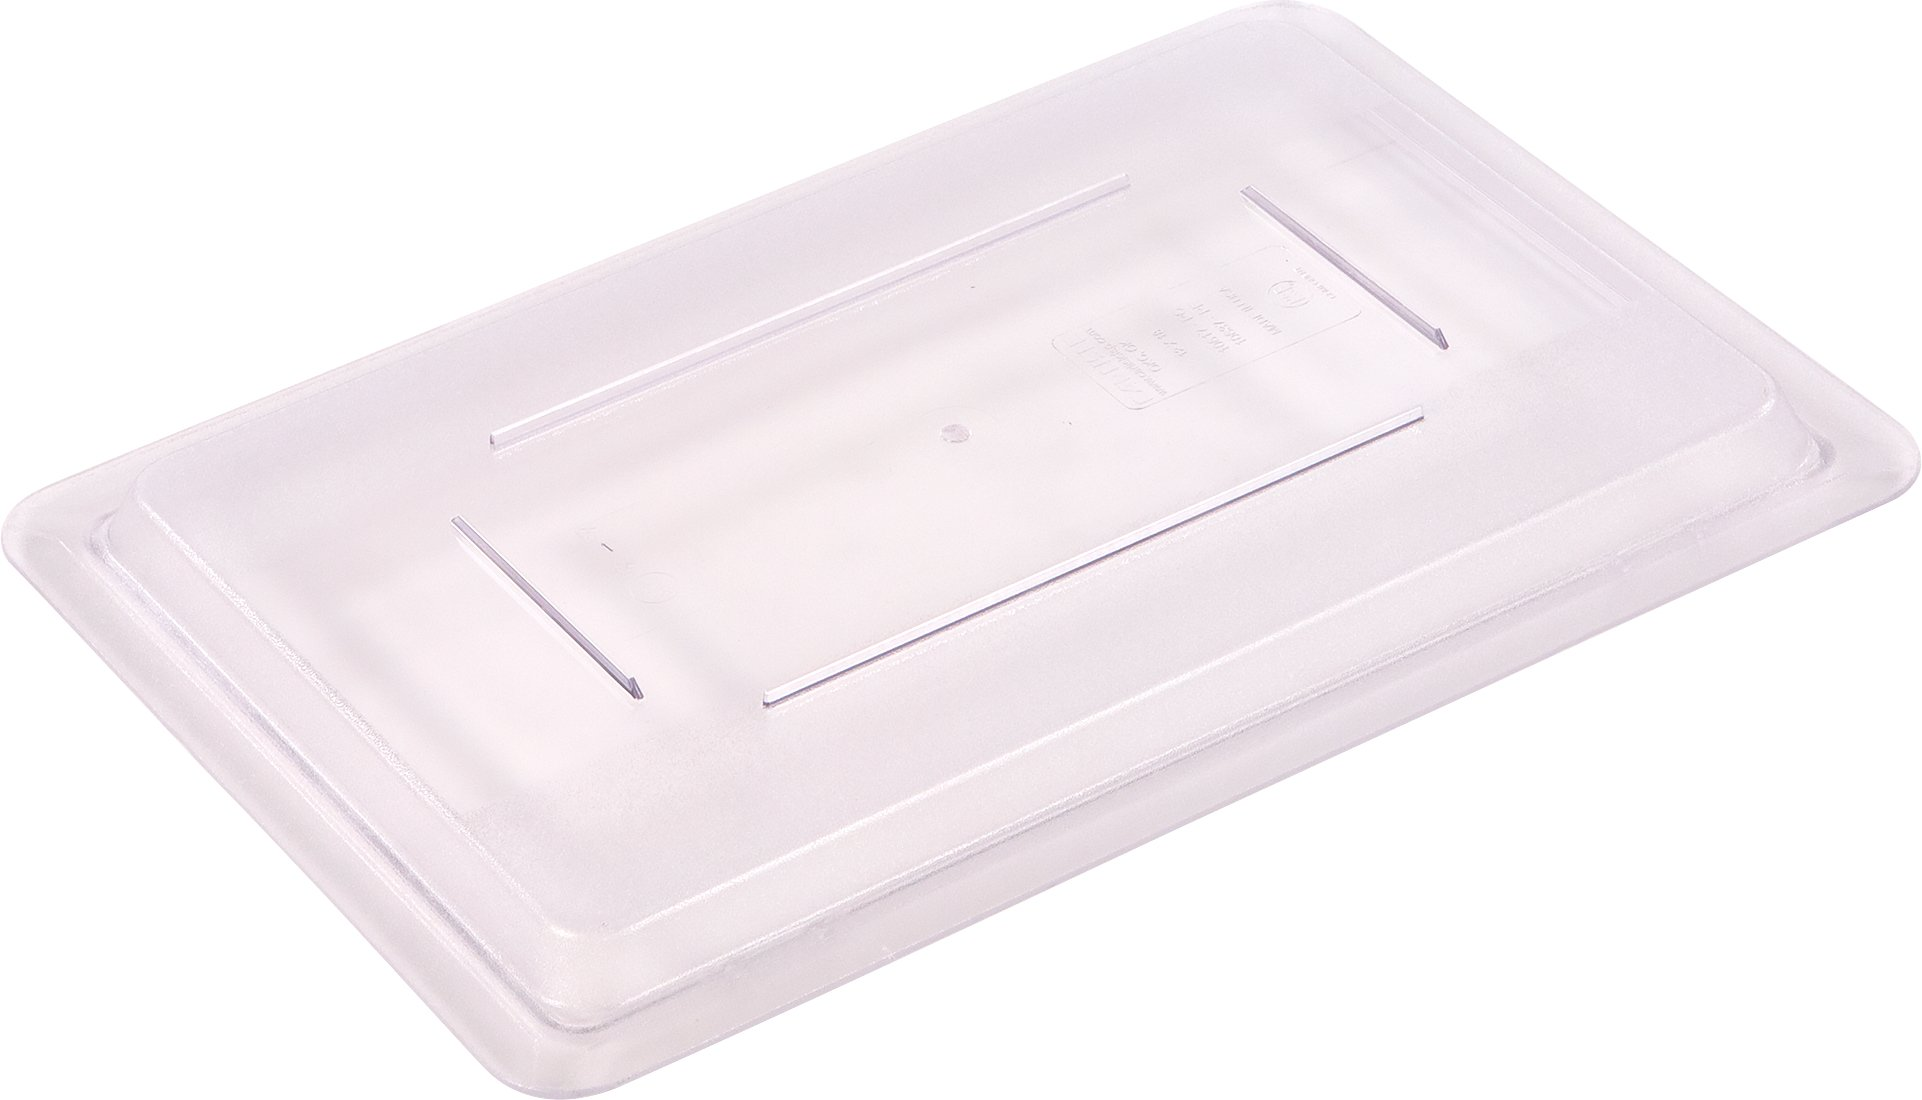 FLO1061707 - Carlisle food service products StorPlus Lid - 12in x 18in by Carlisle